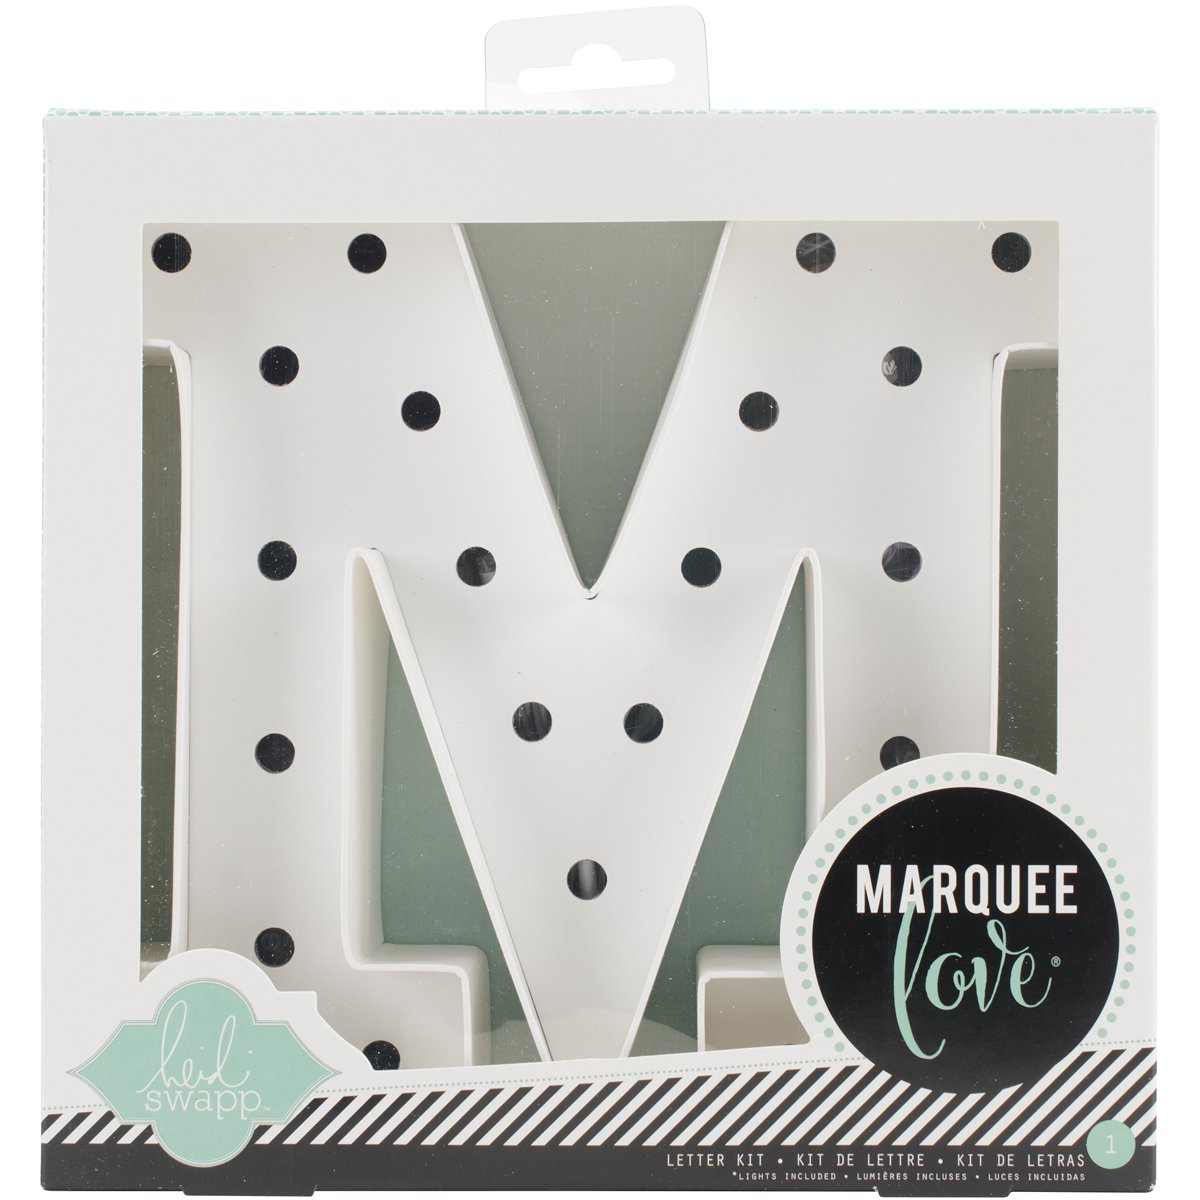 american crafts cardboard heidi swapp marquee love letters numbers and shapes 85 inch m amazoncouk kitchen home